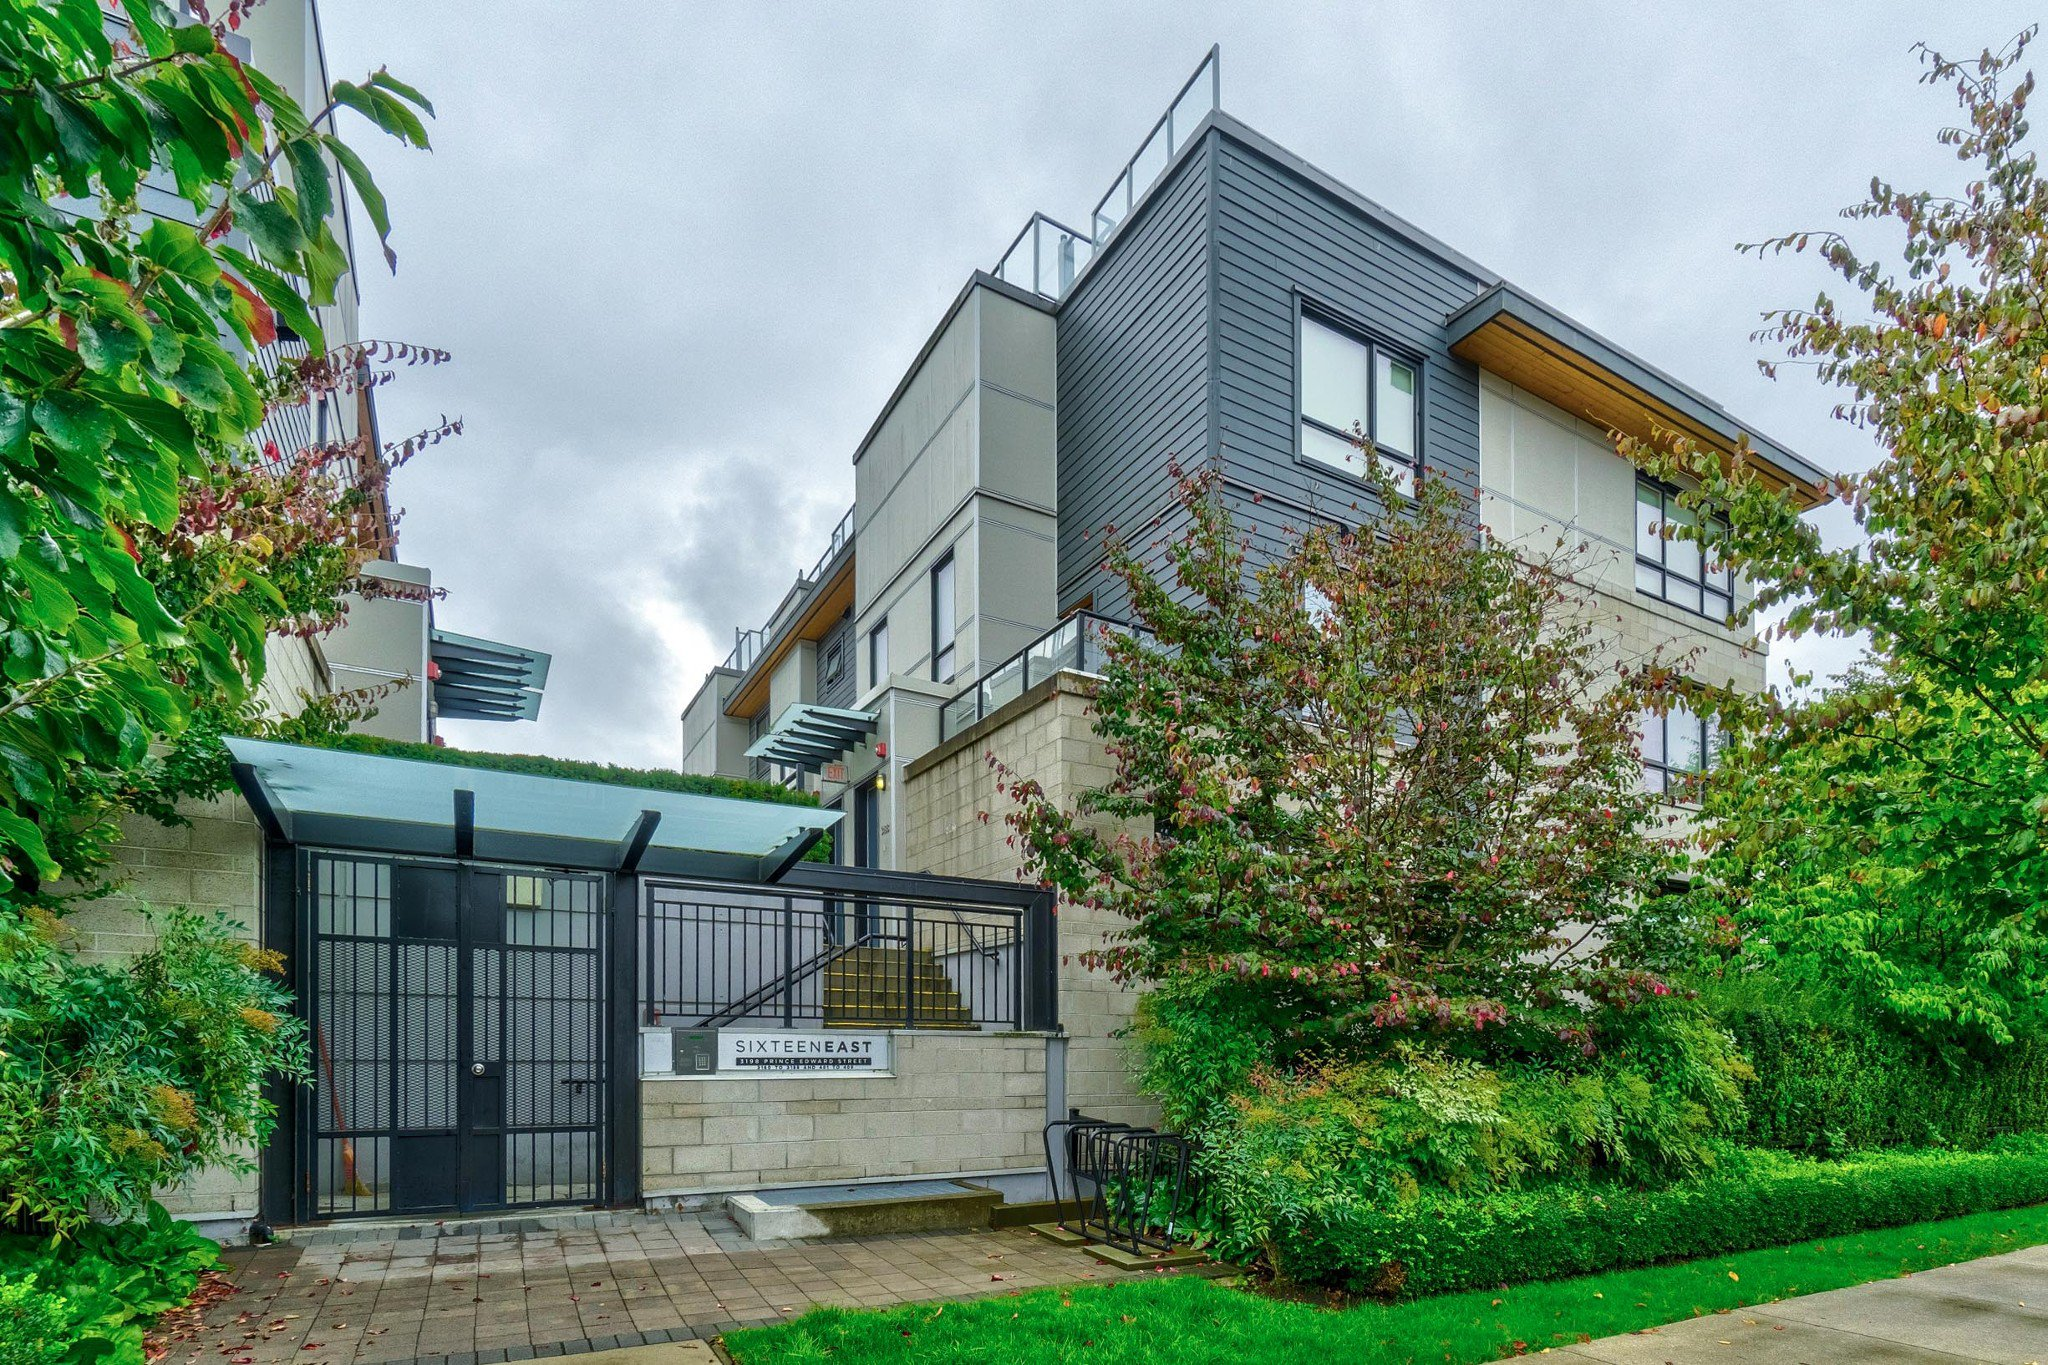 """Main Photo: 3170 PRINCE EDWARD Street in Vancouver: Mount Pleasant VE Townhouse for sale in """"SIXTEEN EAST"""" (Vancouver East)  : MLS®# R2404274"""